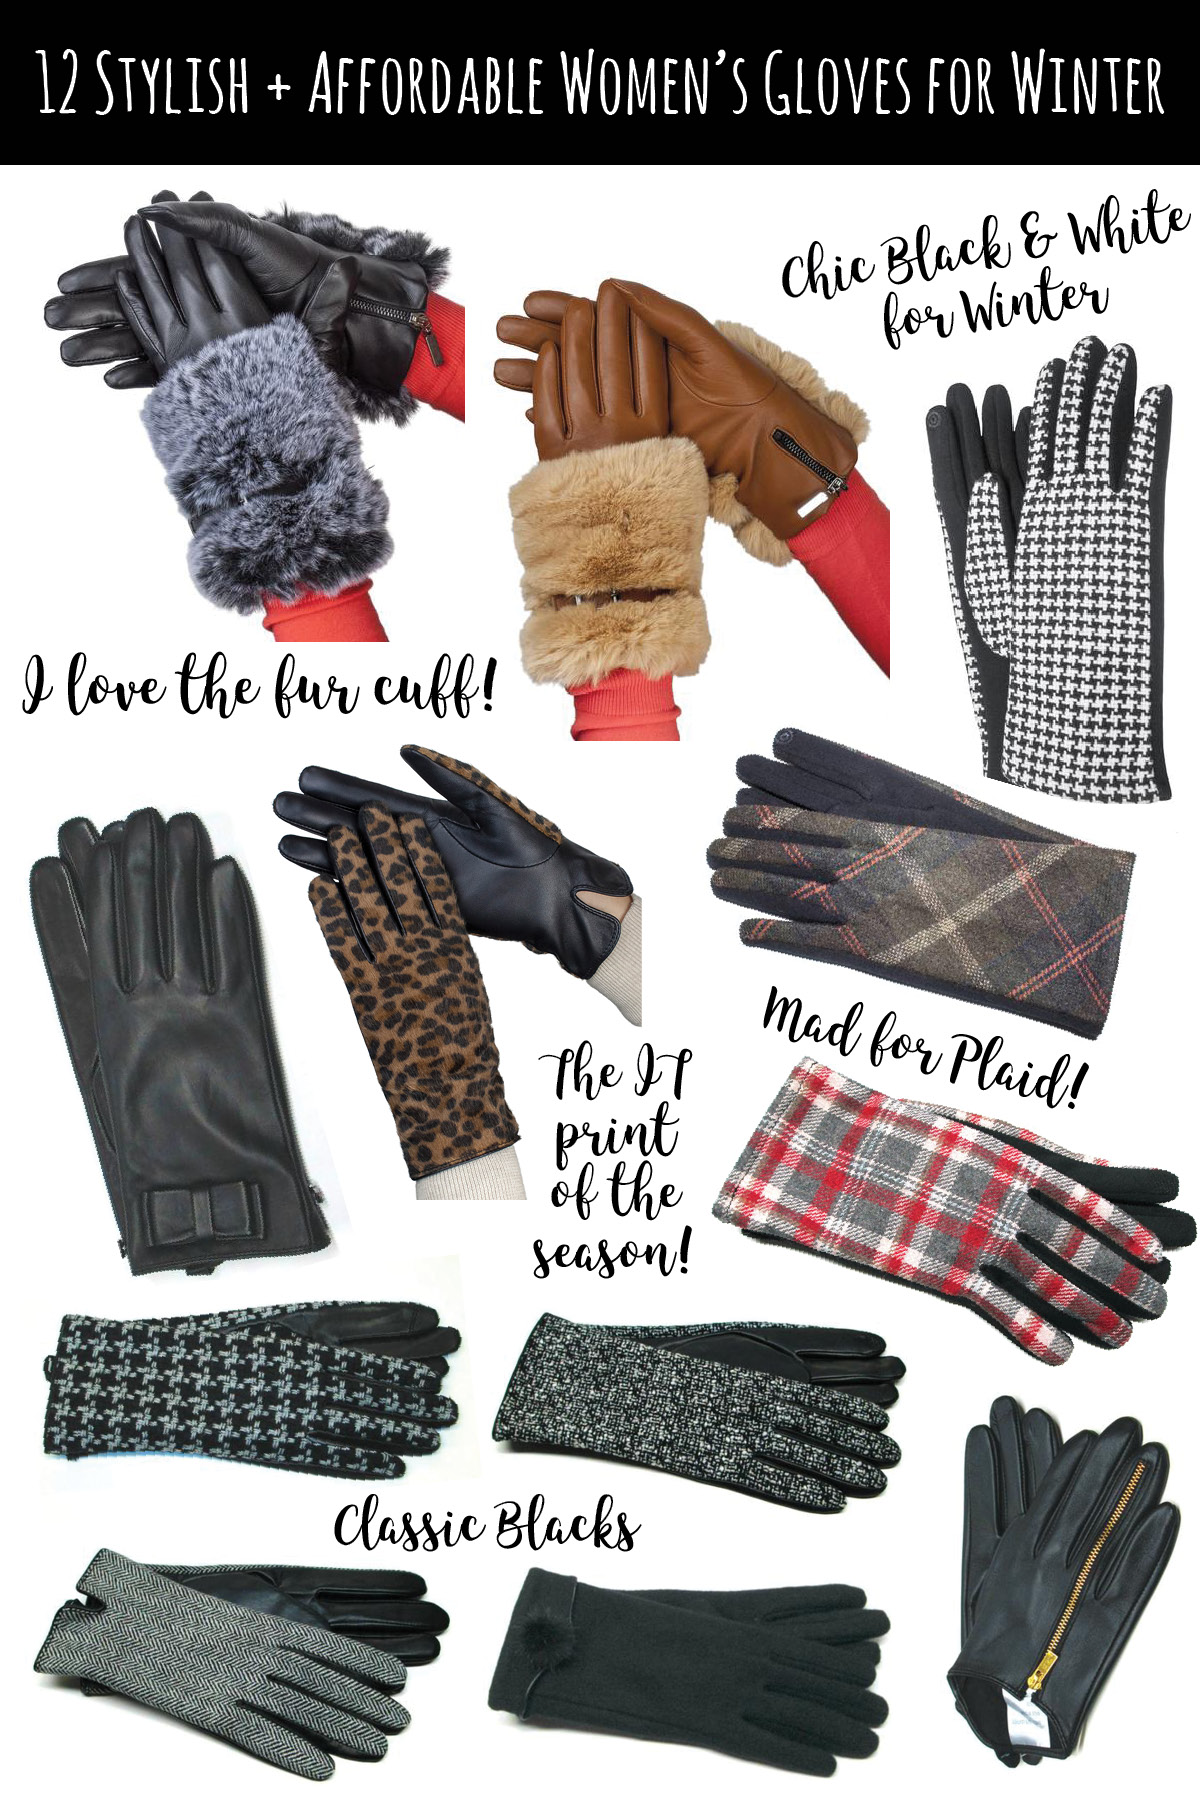 12 Must Have Stylish yet Affordable Women's Gloves for Winter | Gloves International. Gloves make the best gifts and stocking stuffers for those picky friends and family. | Women's Gift Guide | Stylish Gloves | Women's Gloves | Women's Leather Gloves | Affordable Gloves | Gloves under $50 | Designer Gloves for Women | Faux Fur Gloves | Touch Screen Gloves | Stylish Winter Gloves for Women featured by top Austin fashion blog Dressed to Kill